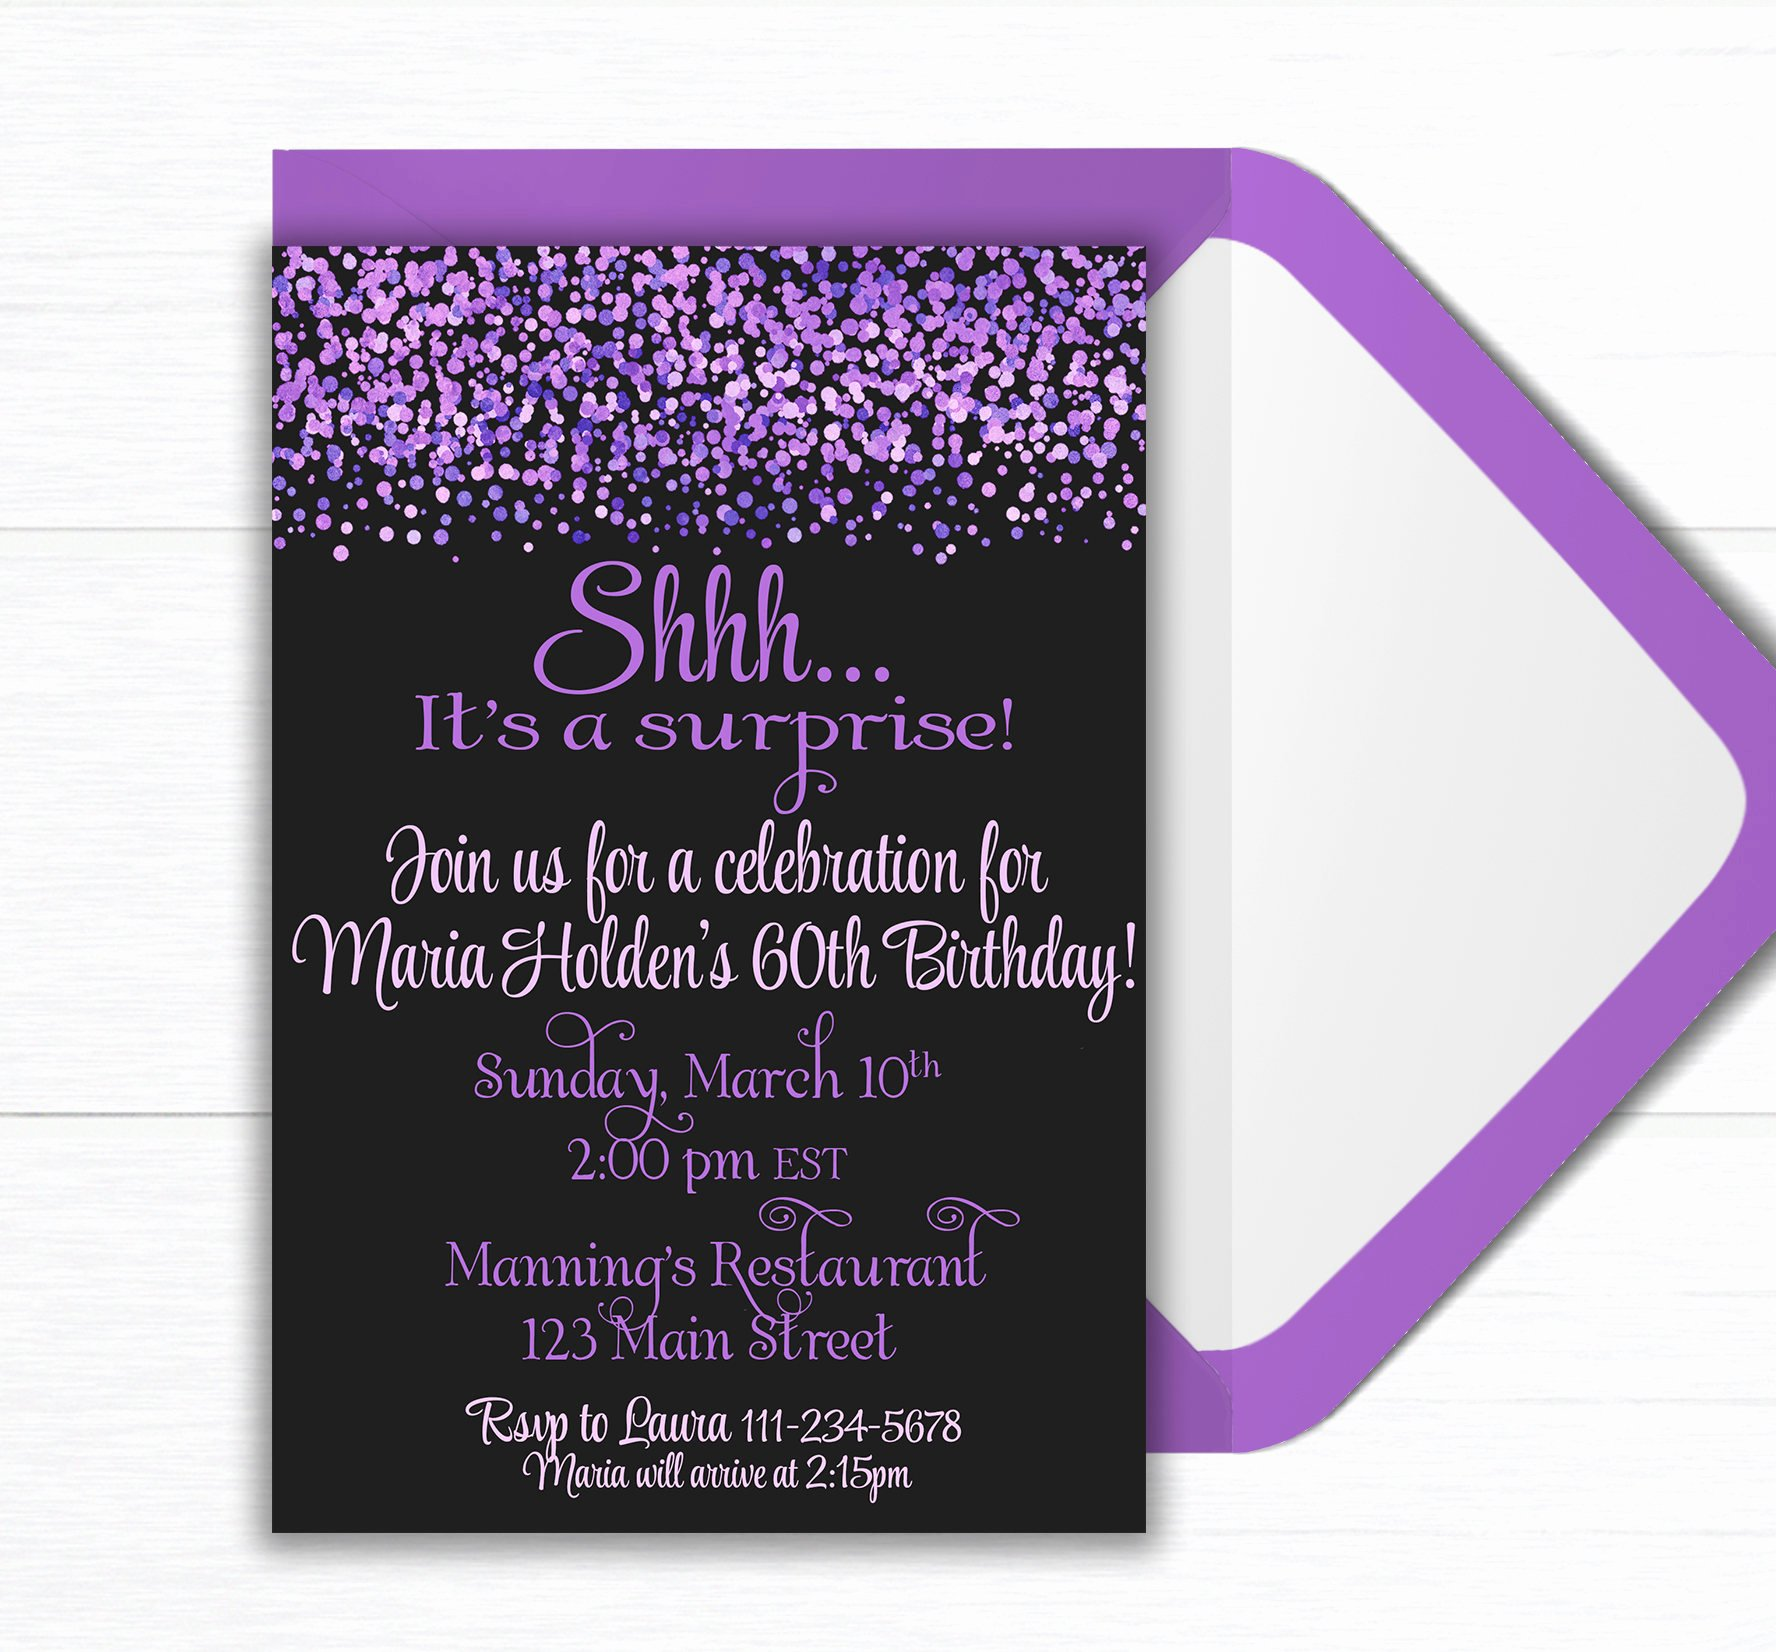 Surprise Party Invites Templates Luxury Surprise Birthday Party Invite Birthday Party Invitation Confetti Birthday Party Party